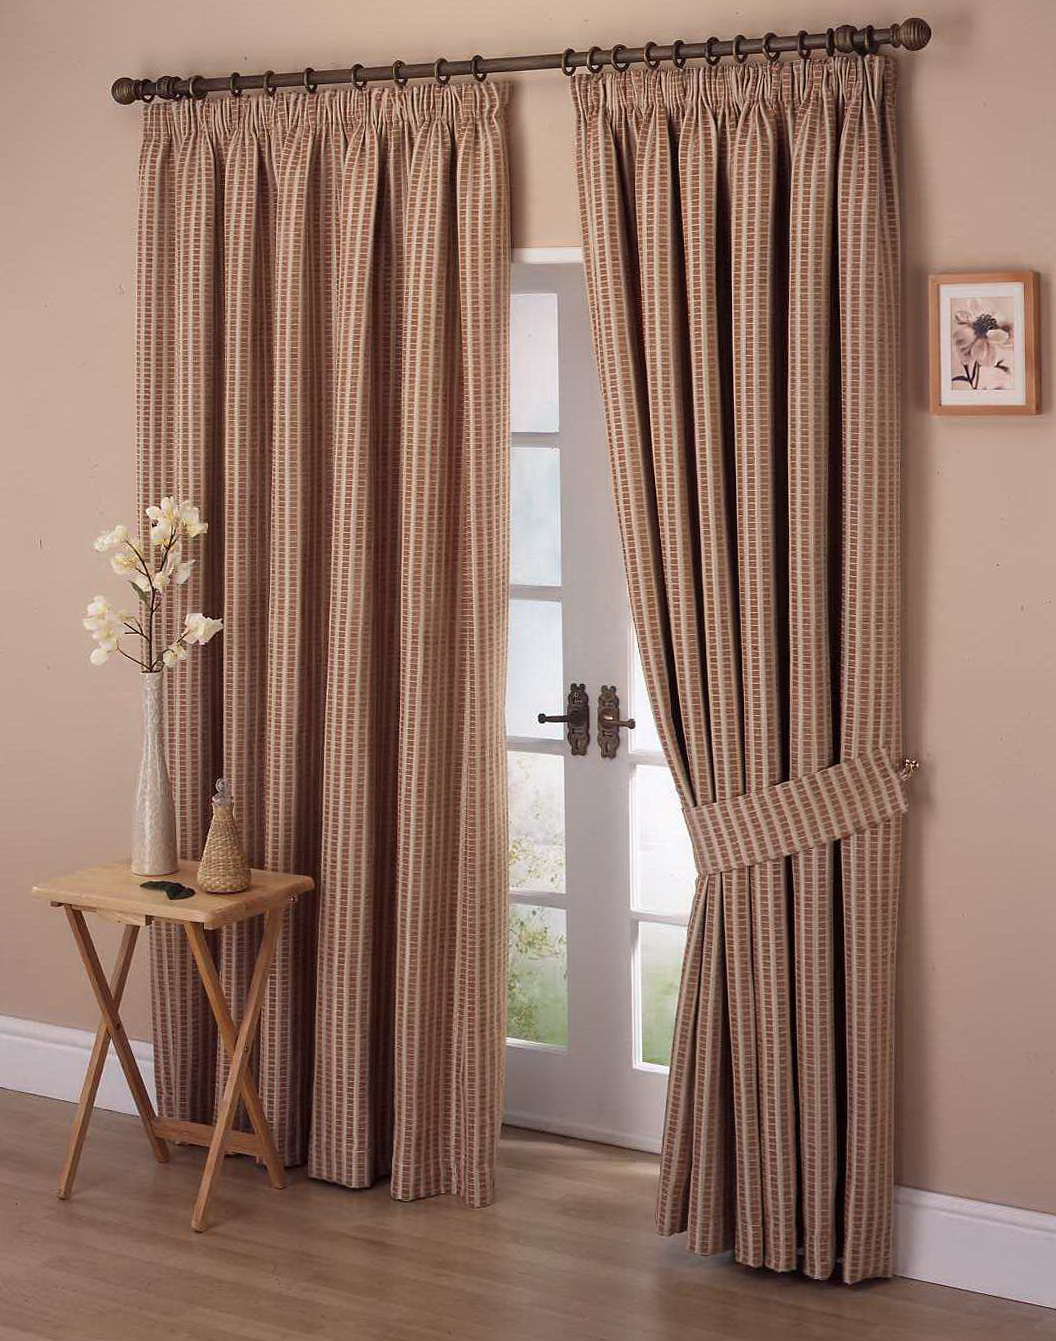 types of curtains for home home design ideas. Black Bedroom Furniture Sets. Home Design Ideas